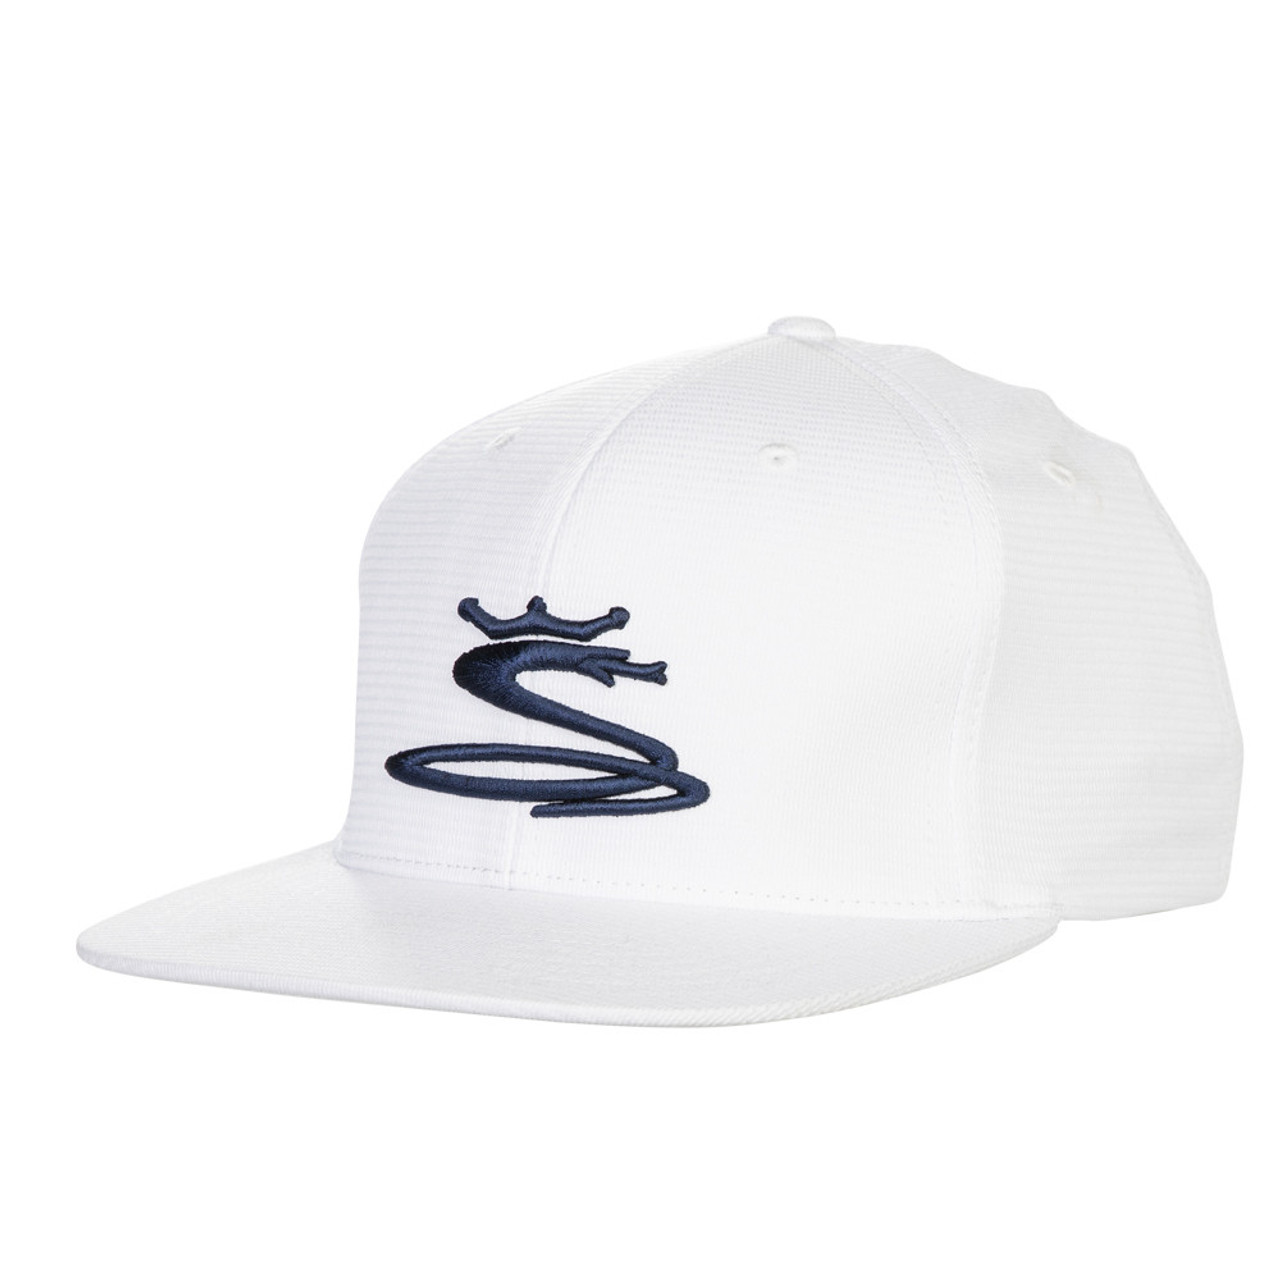 Cobra Tour Snake Snapback Caps - White / Peacoat